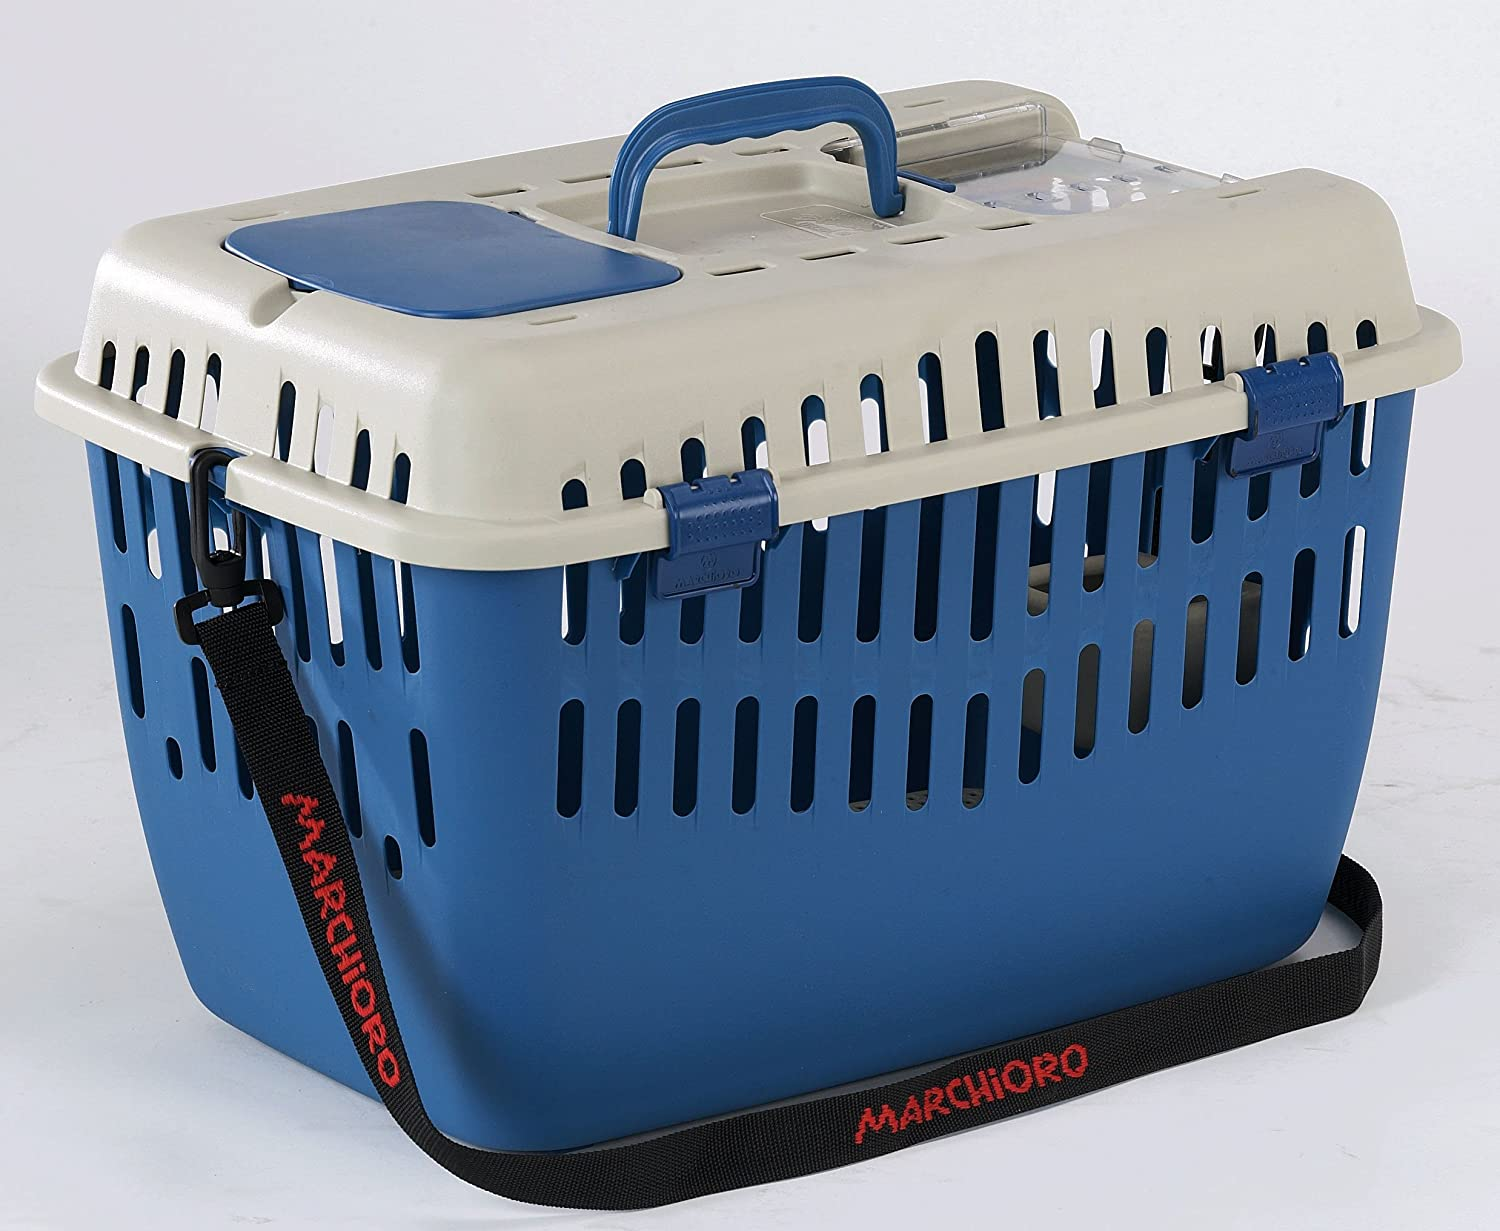 Binny 2 Top Pet Carrier Marchioro